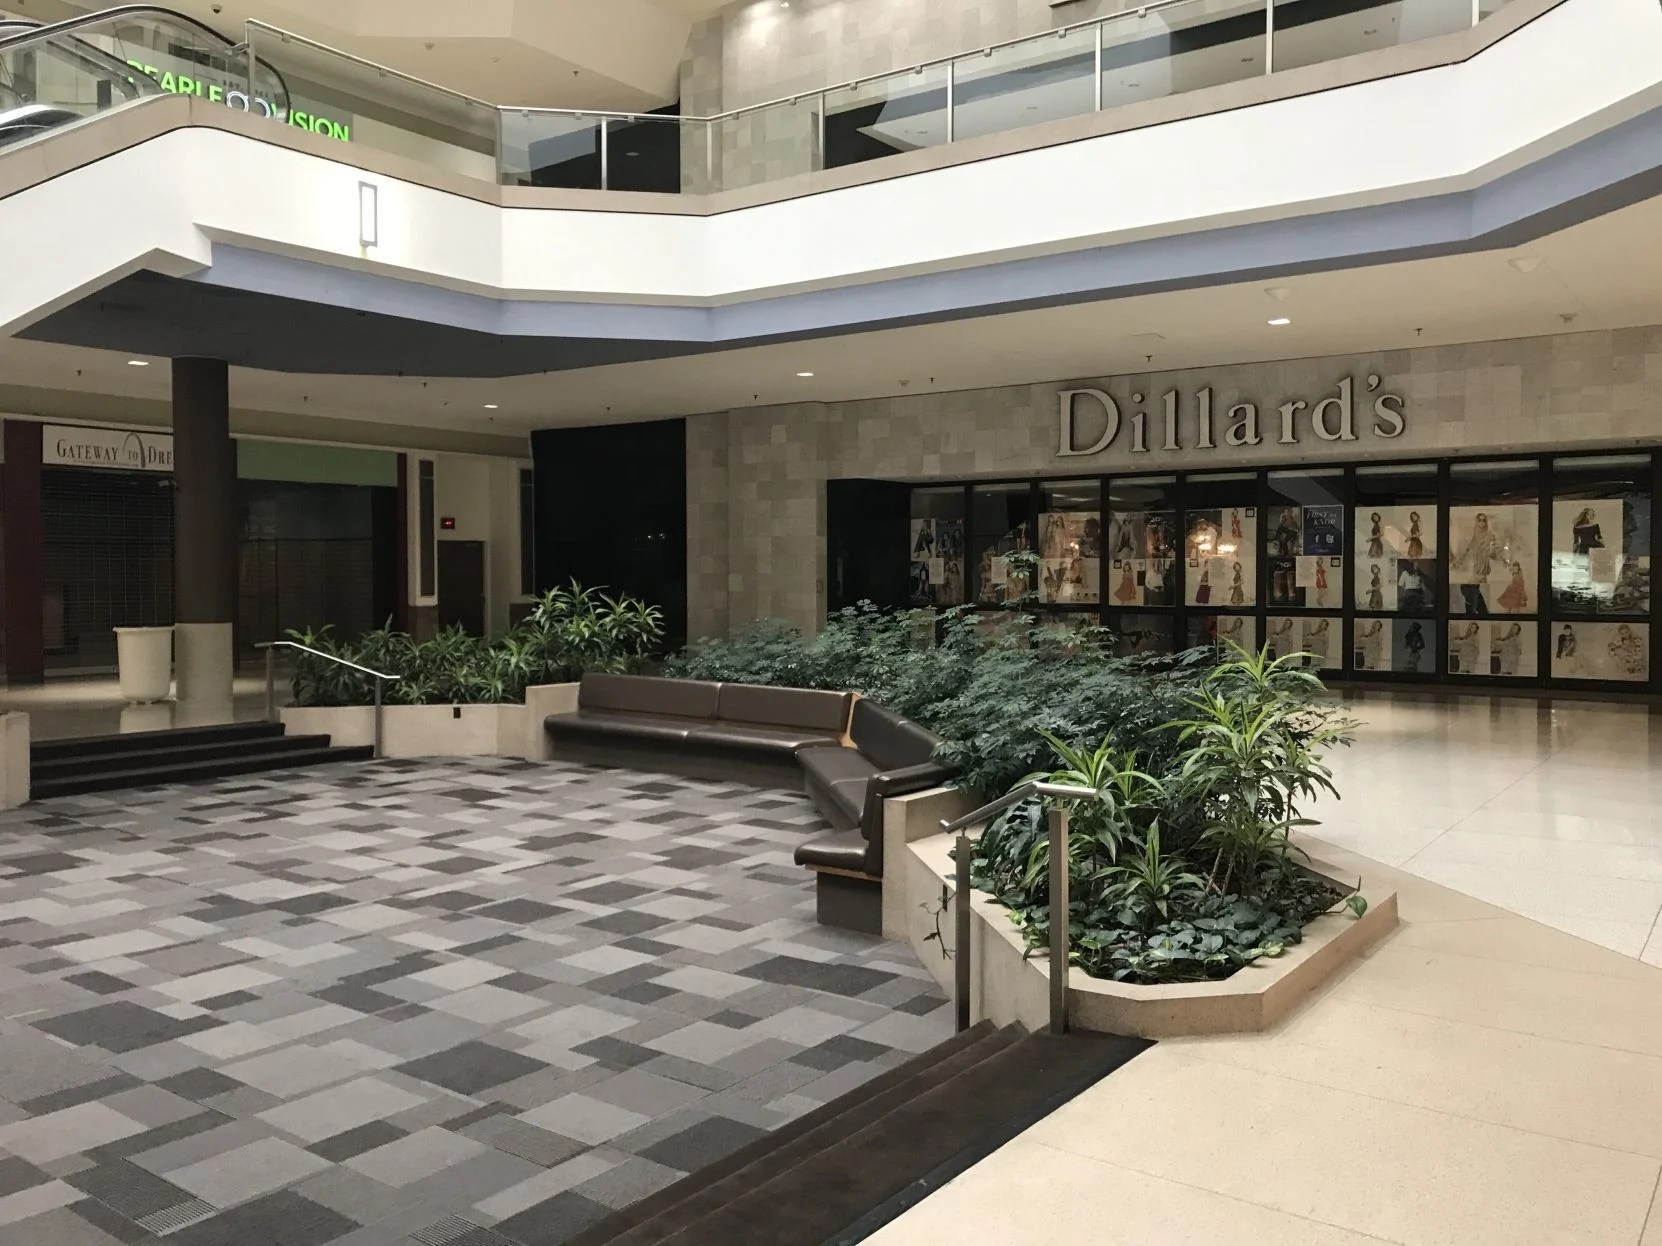 Bank At Chesterfield Mall Over Retailed In Chesterfield Struggling Mall Tops Concerns